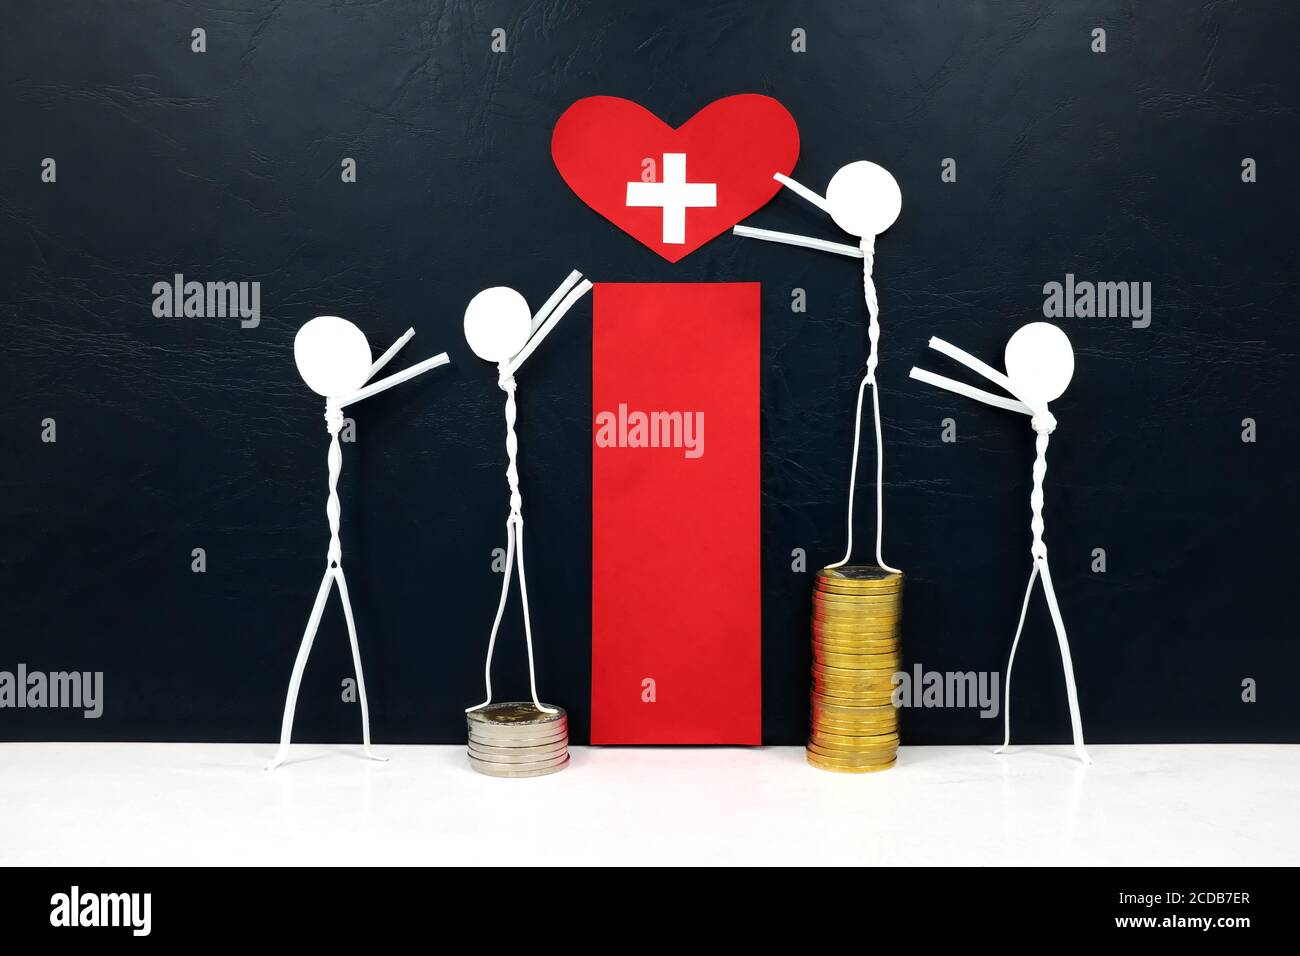 Stick figure reaching for a red heart shape with cross cutout while stepping on stack of coins. Healthcare, medical care and hospital access inequality. Stock Photo